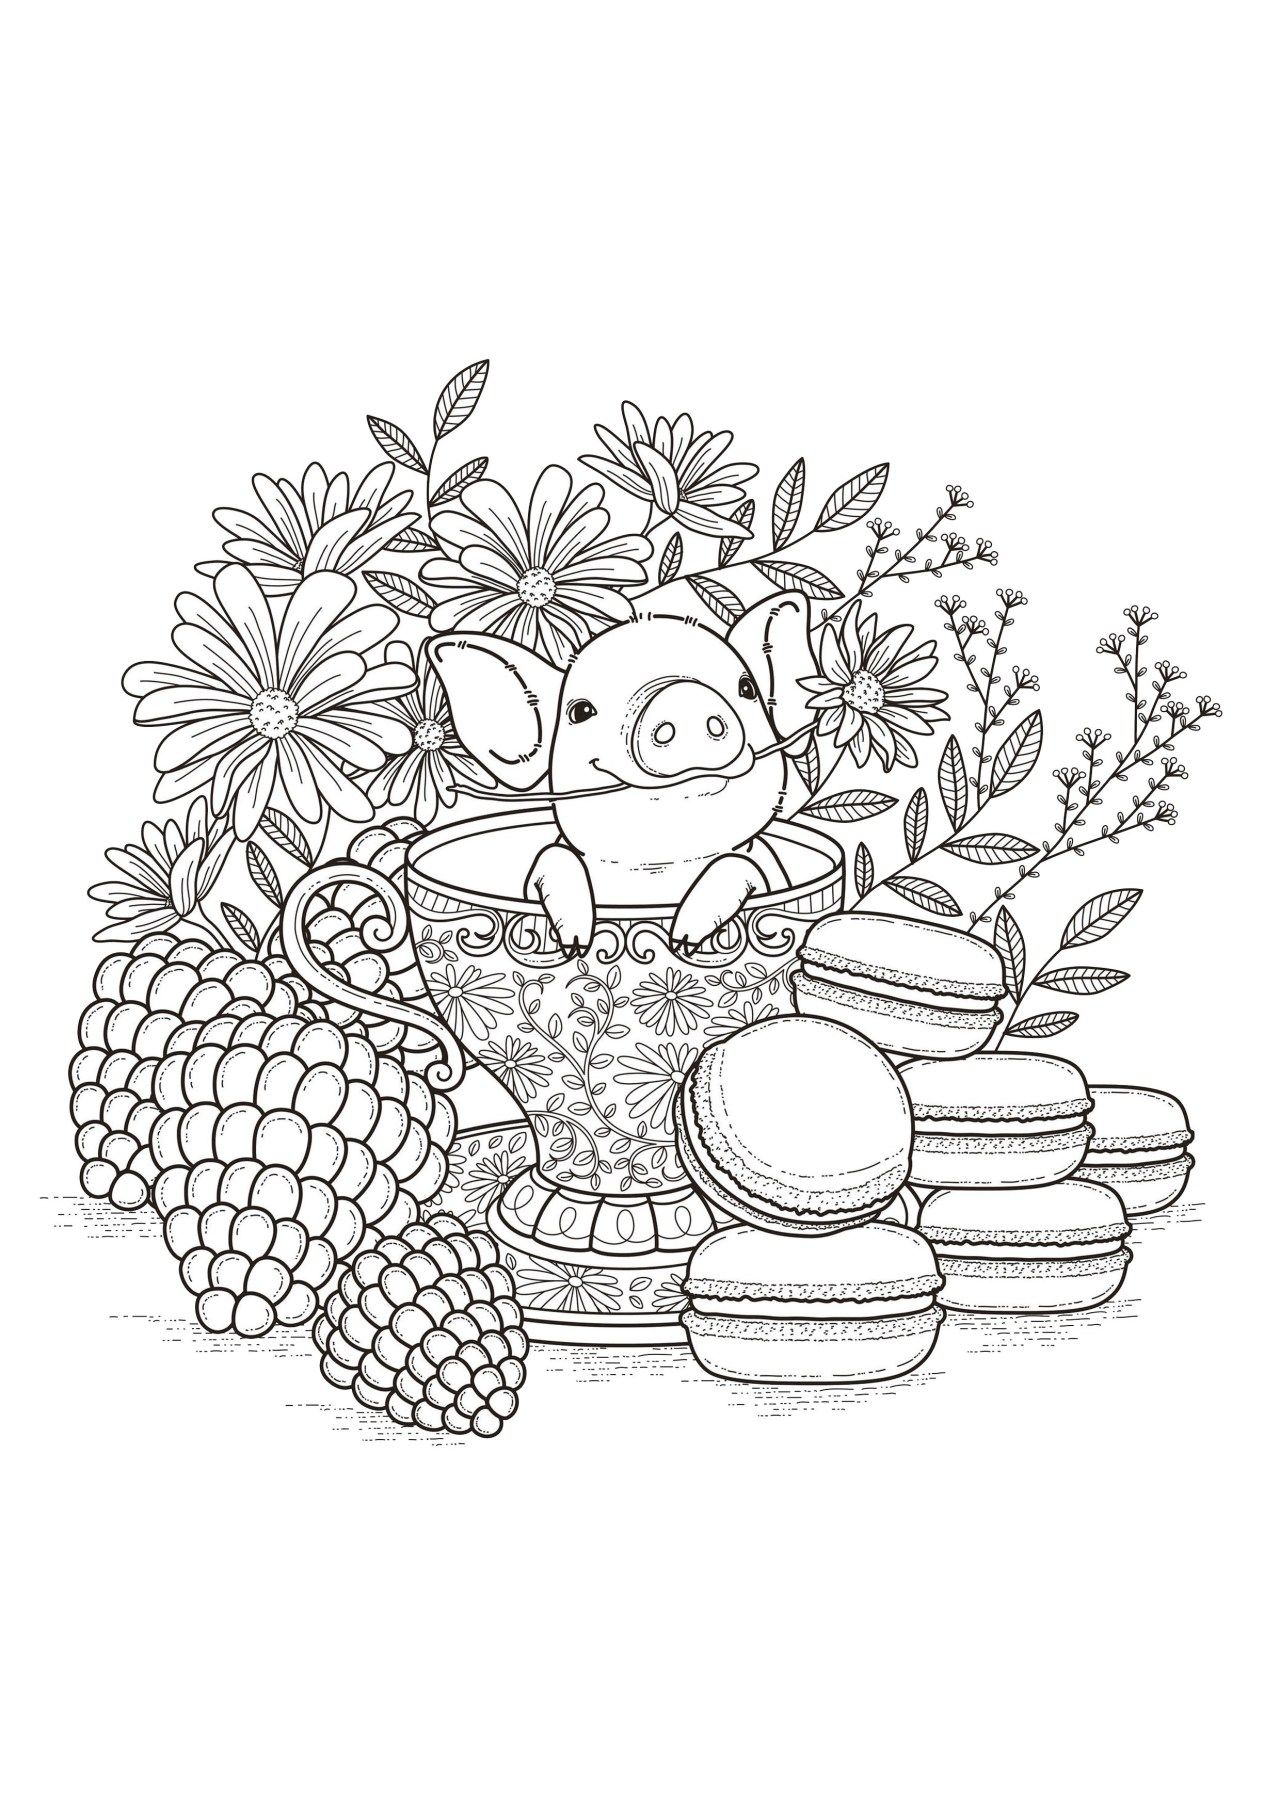 Pig Coloring Pages Pigs Coloring Pages For Adults Coloring Pages Nature Detailed Coloring Pages Witch Coloring Pages